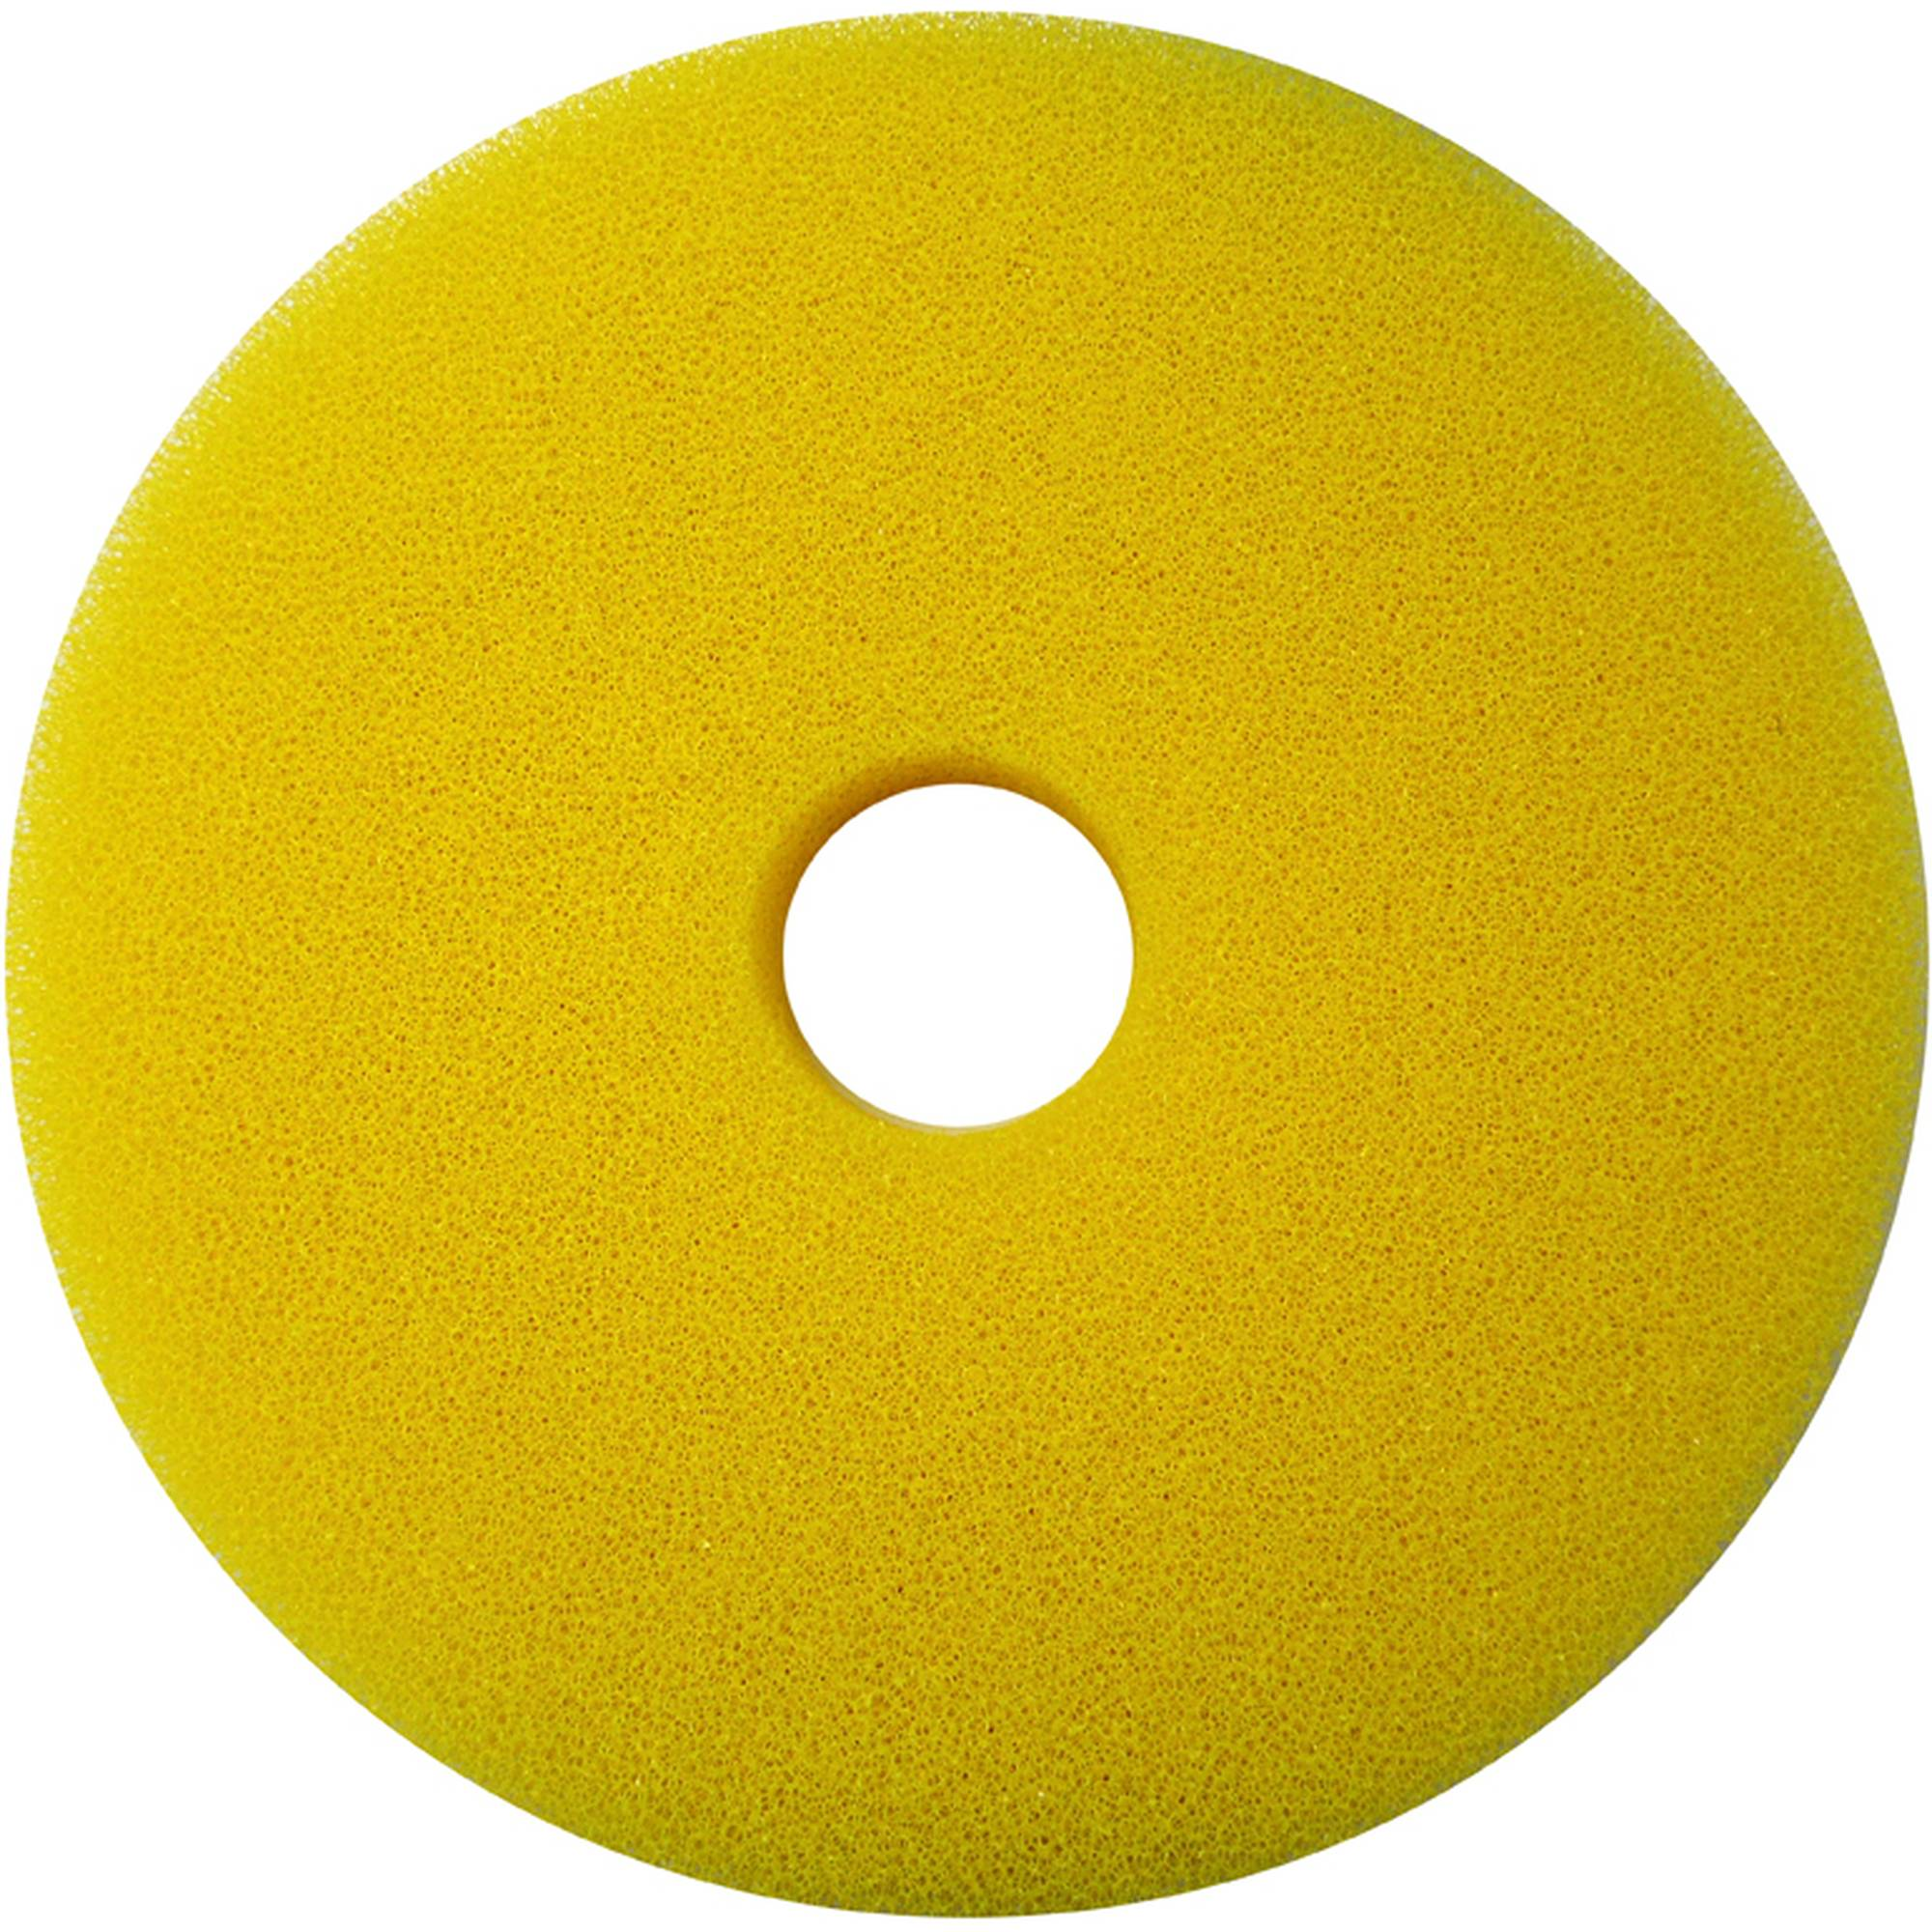 Filtersponge medium/yellow FPU10000-00